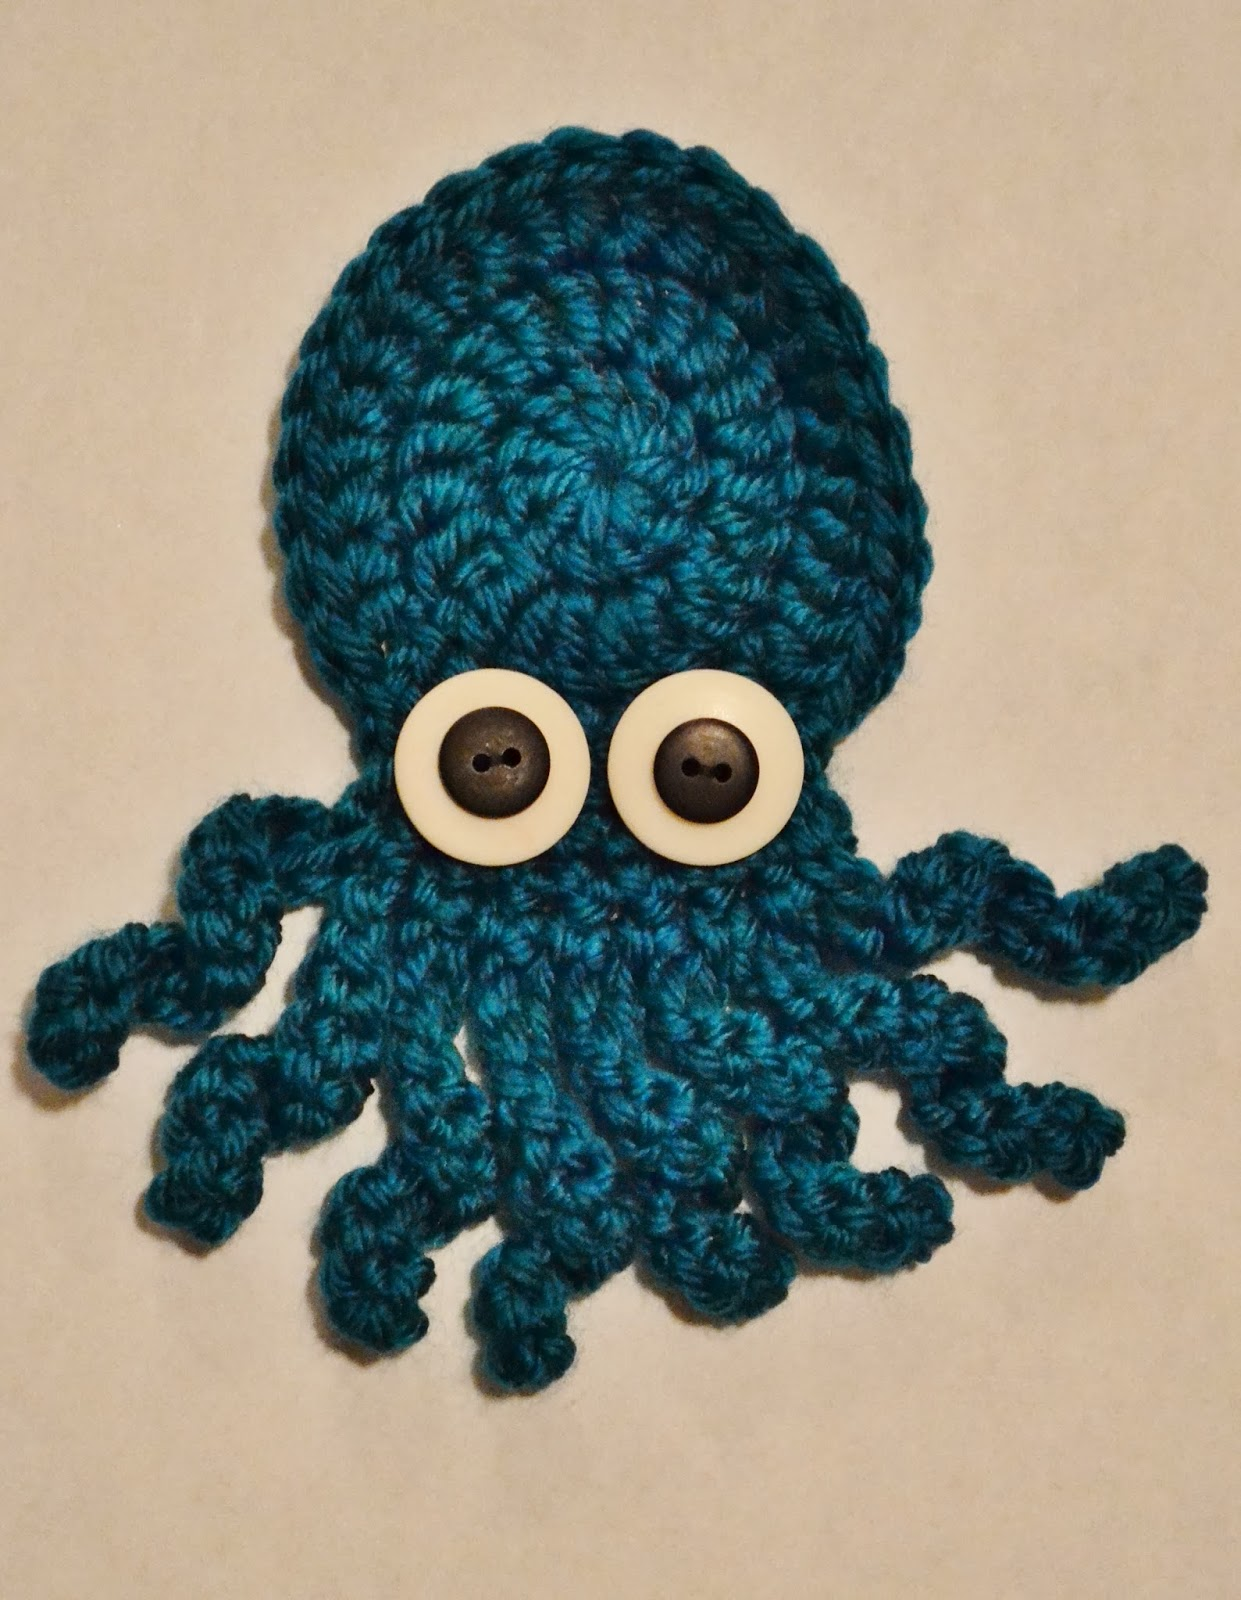 The Sequin Turtle: Basic Crochet Octopus Applique Pattern